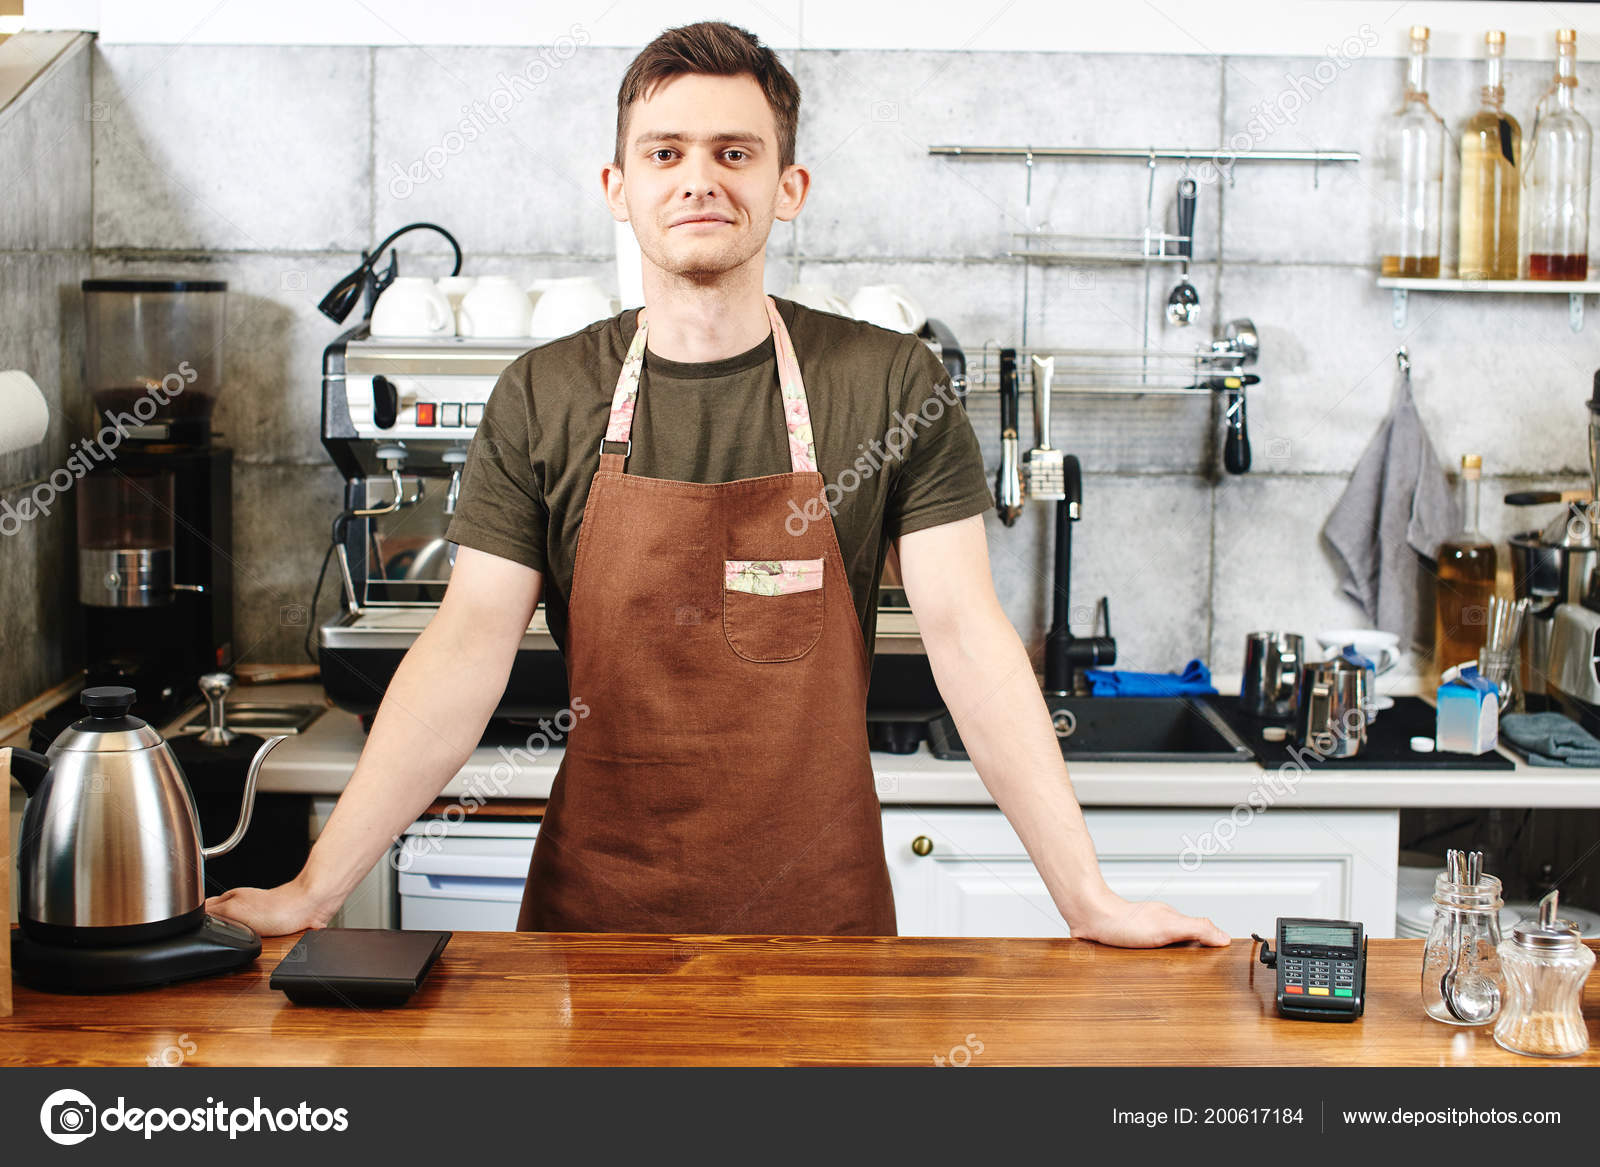 Waiter Uniform Standing Bar Coffee Shop Stock Photo C Amixstudio 200617184